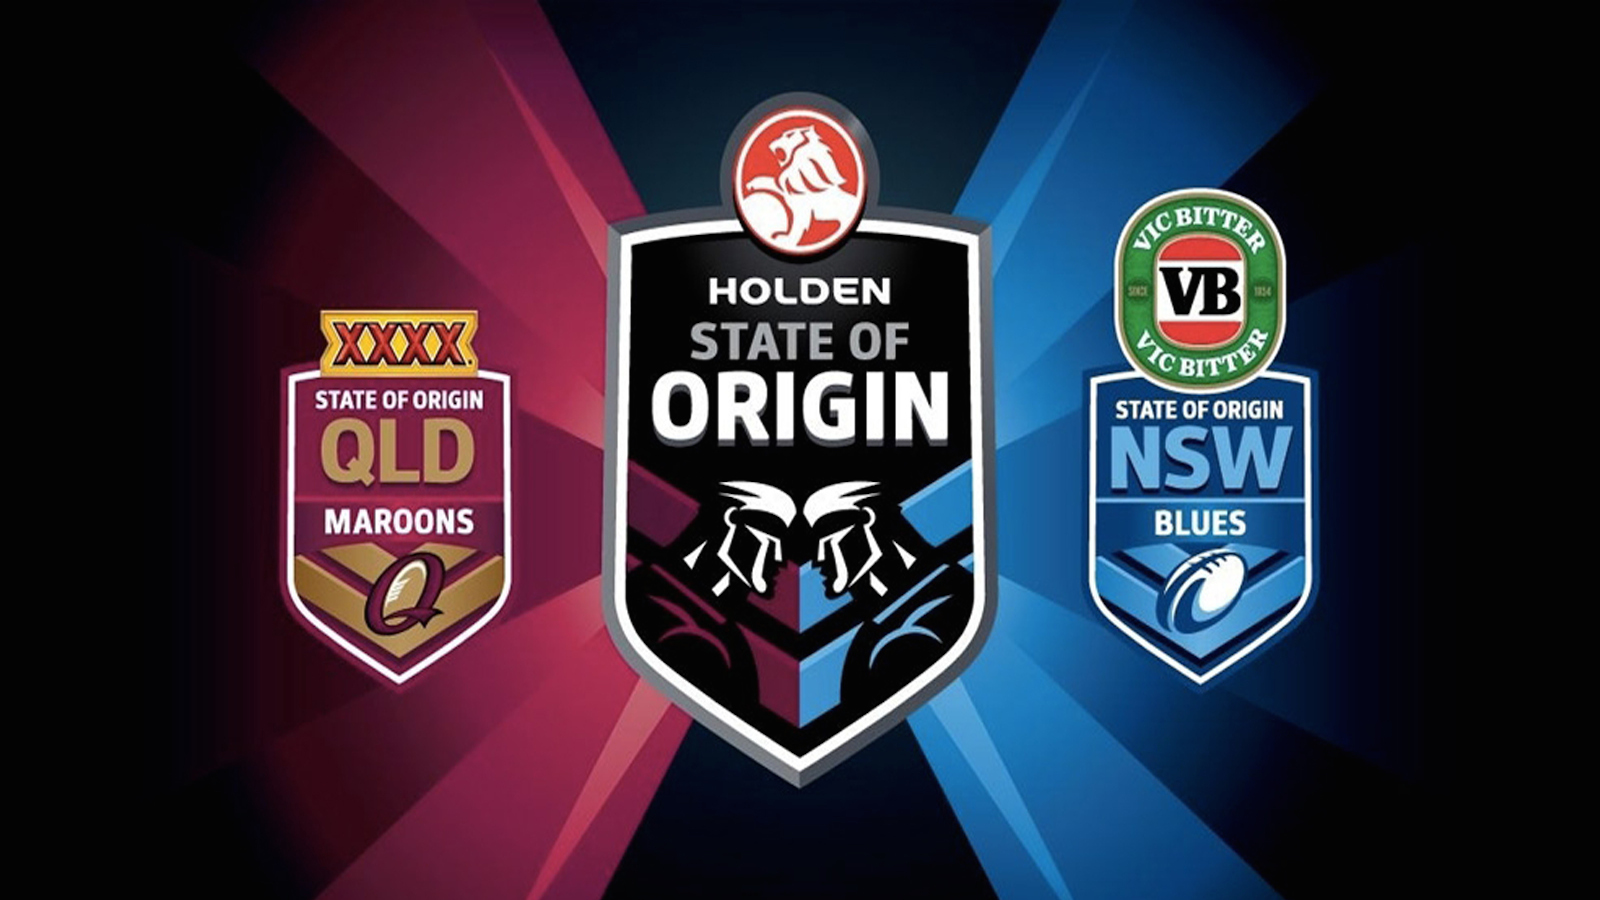 State of Origin 2019: How to watch the decider online and free